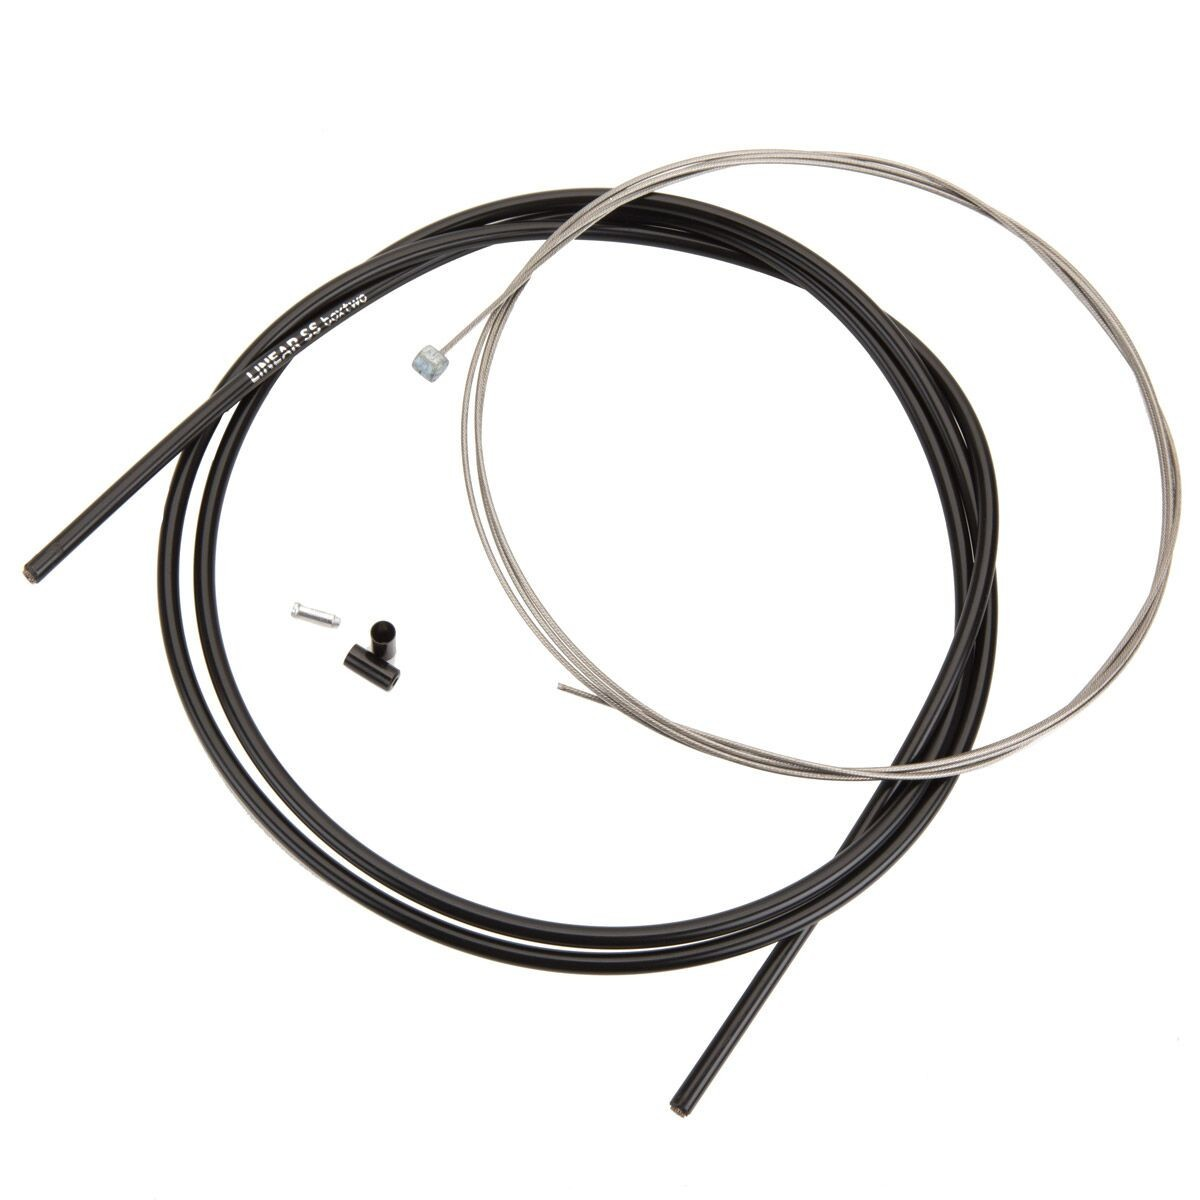 BOX TWO LINEAR BRAKE CABLE KIT